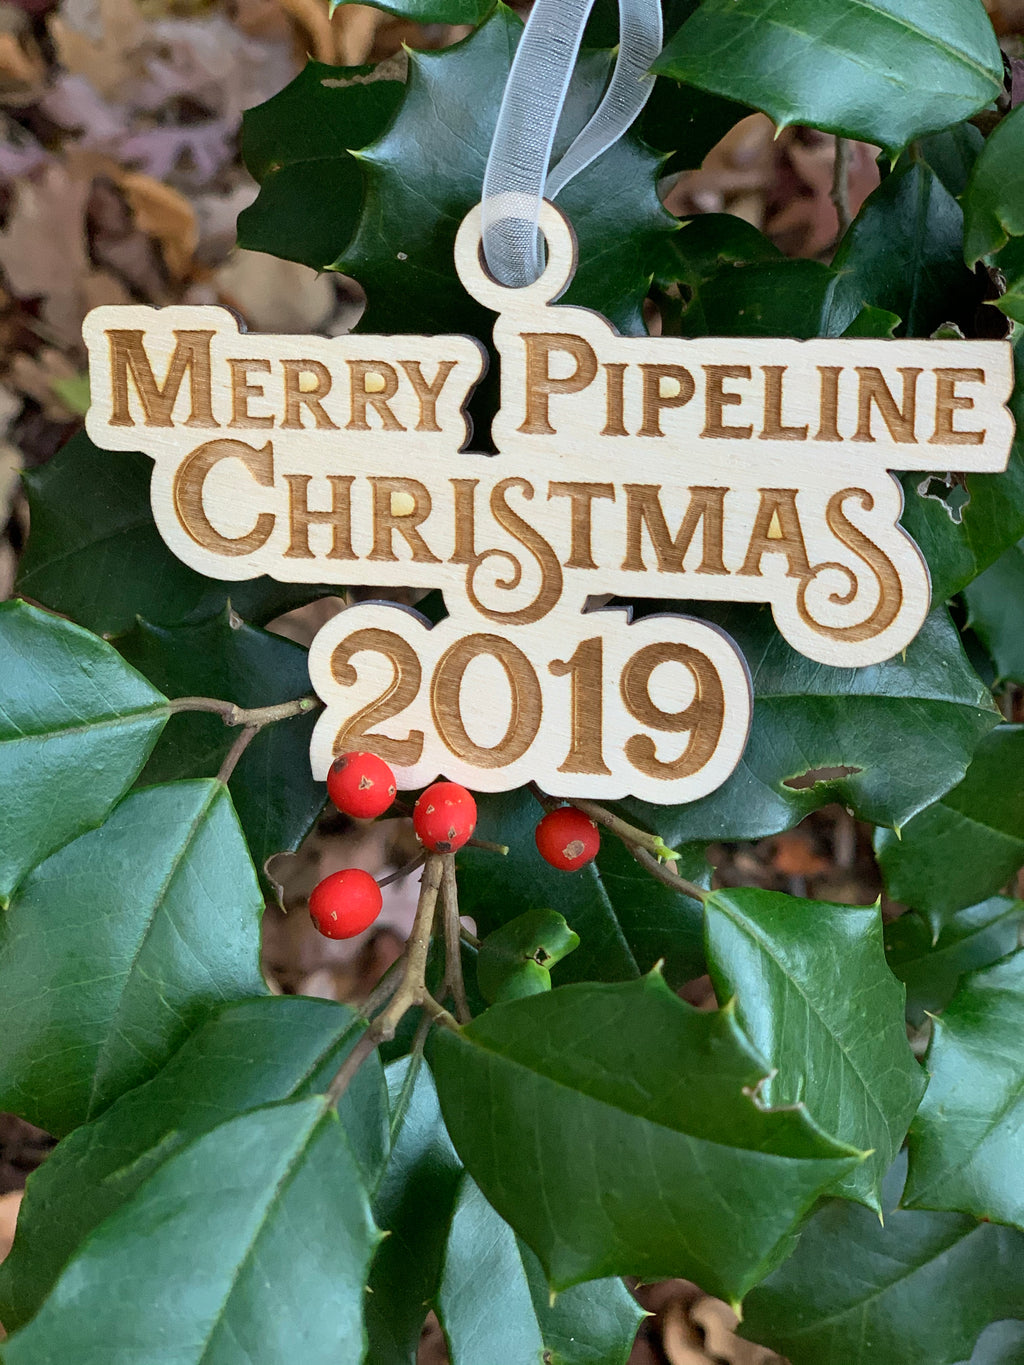 Merry Pipeline Christmas Ornament